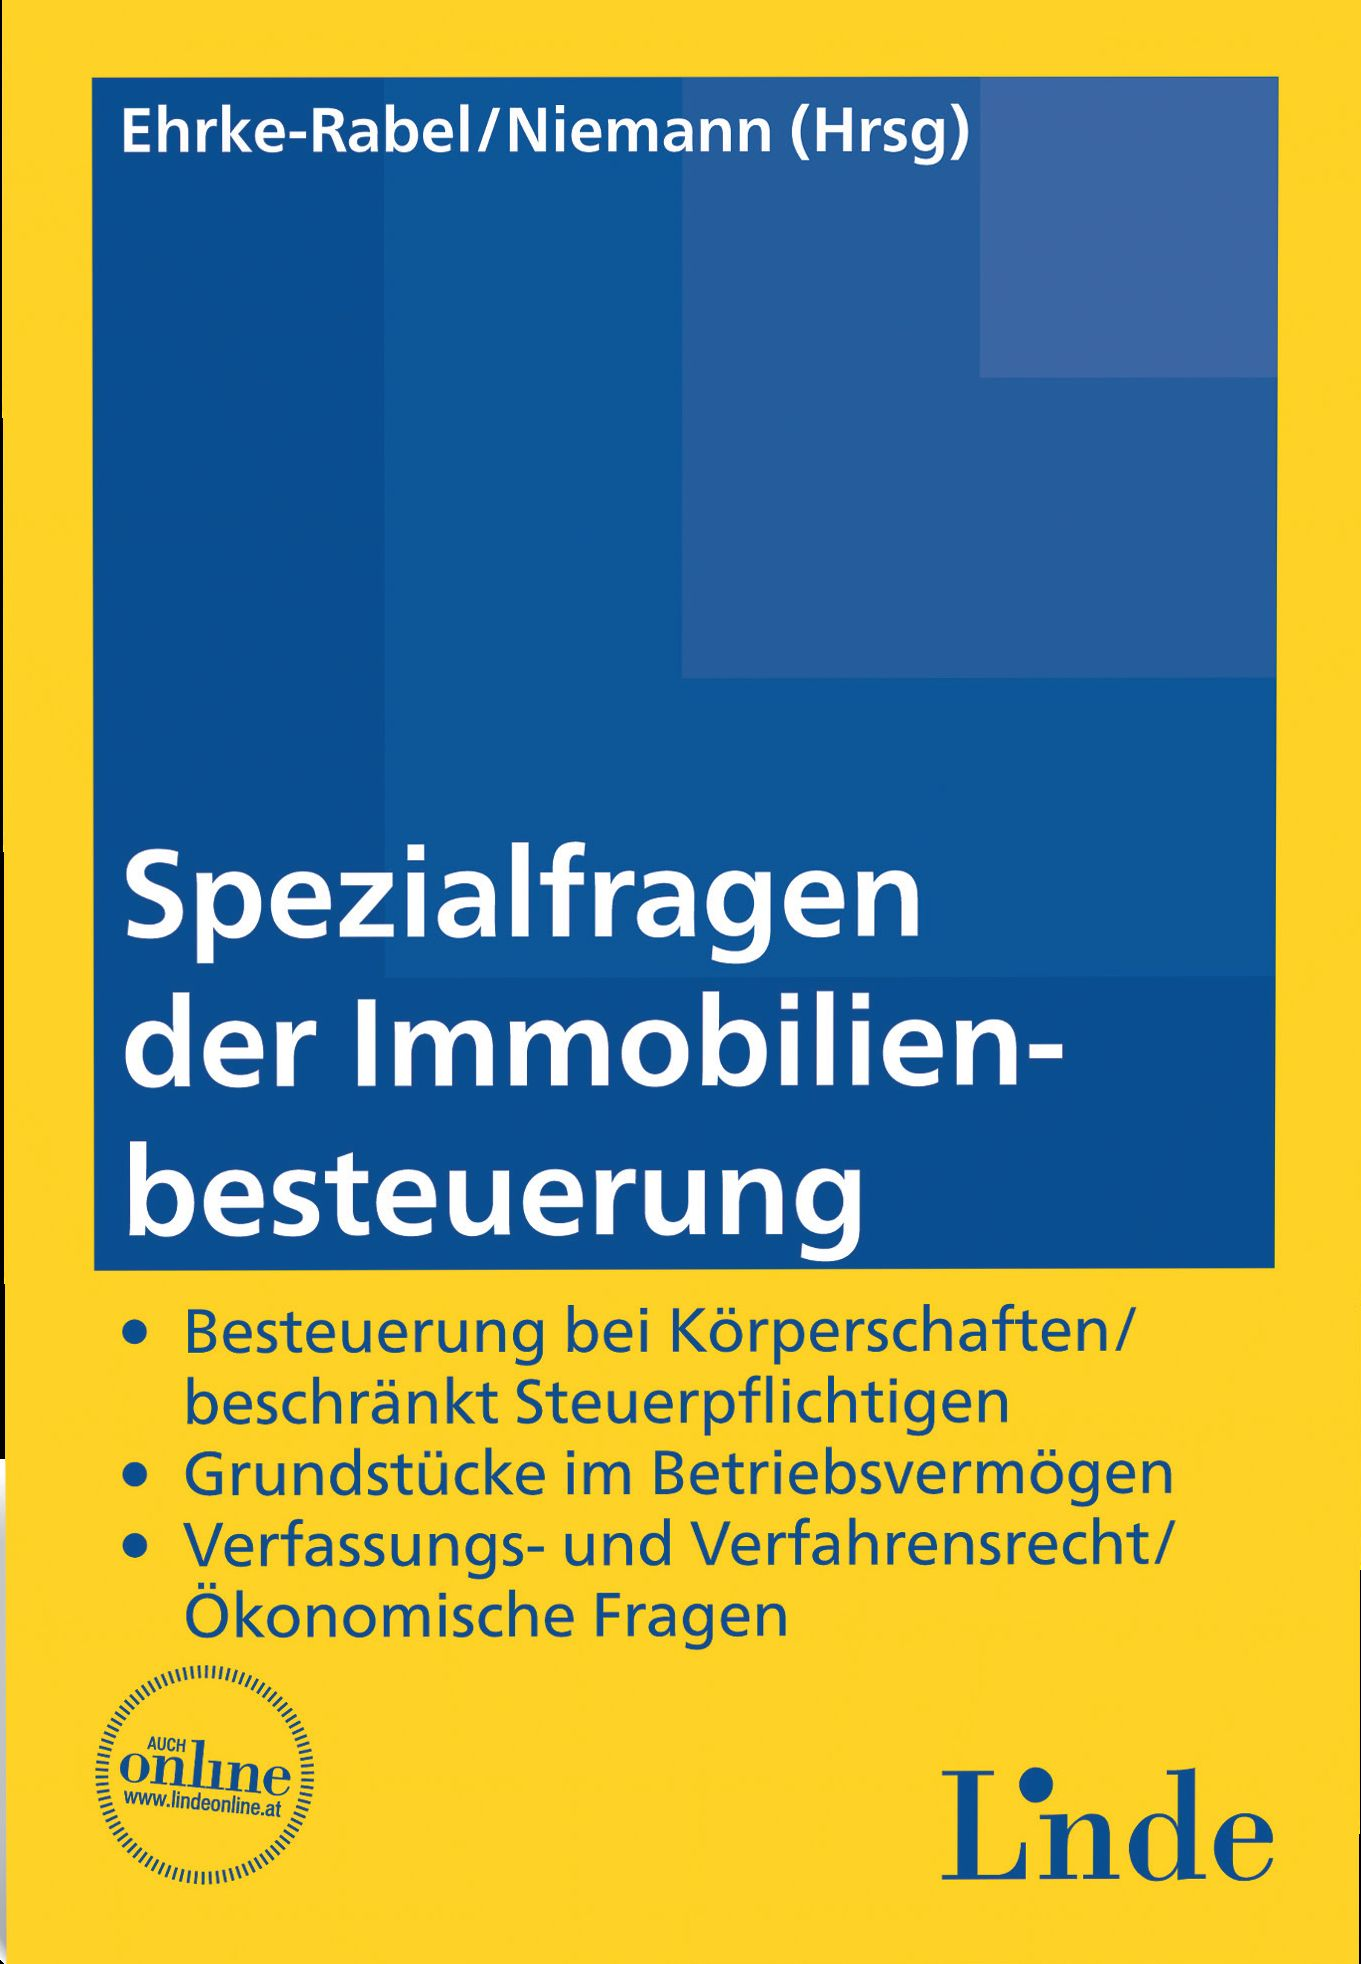 https://webadmin.uni-graz.at/fileadmin/rewi-institute/Finanzrecht/Publikationen/Zwischenablage01.jpg